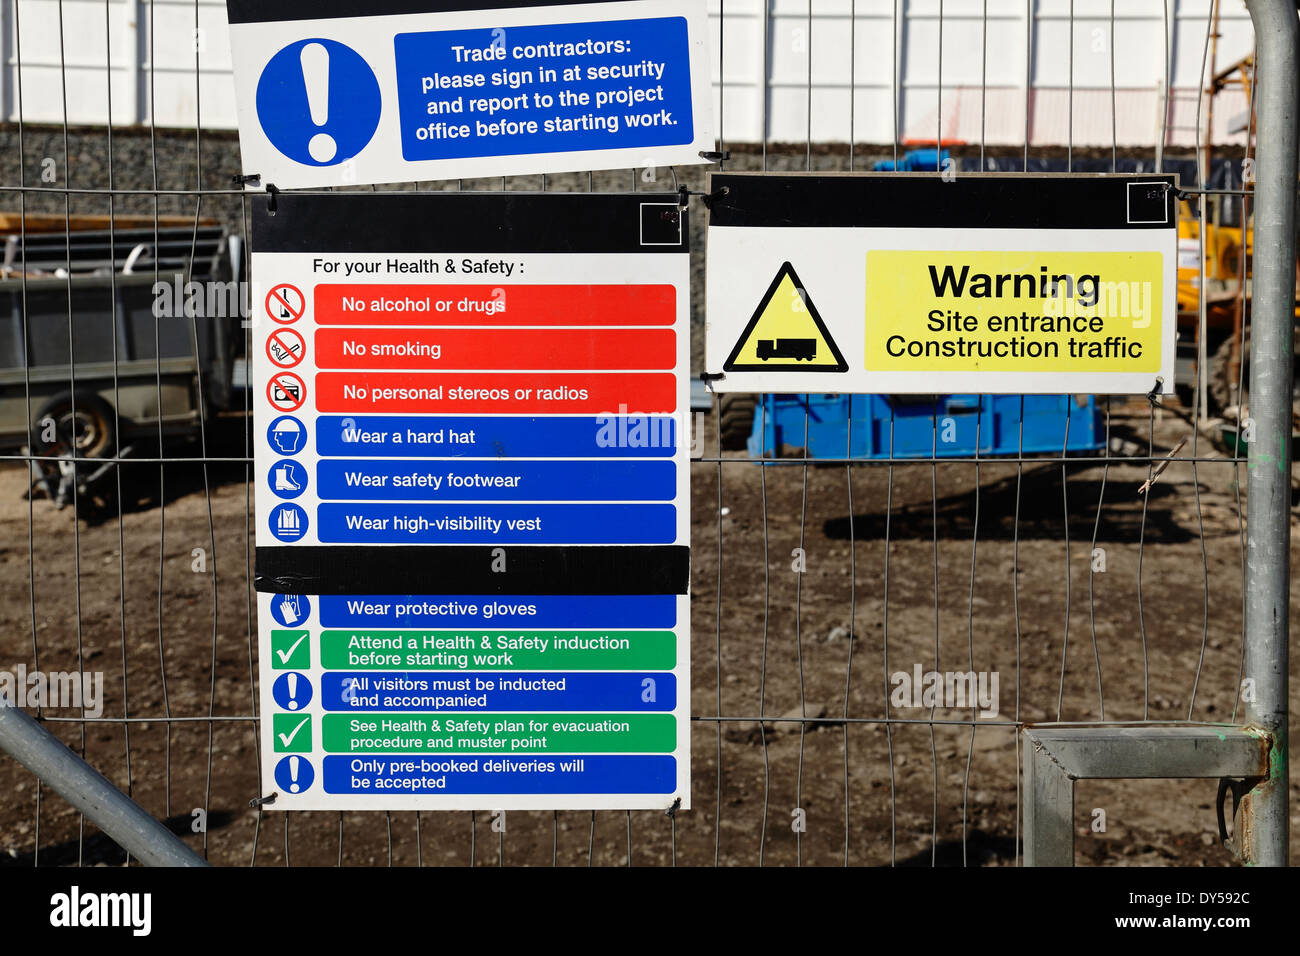 Health And Safety Notices at the entrance to a construction site UK – Construction Site Security Plan